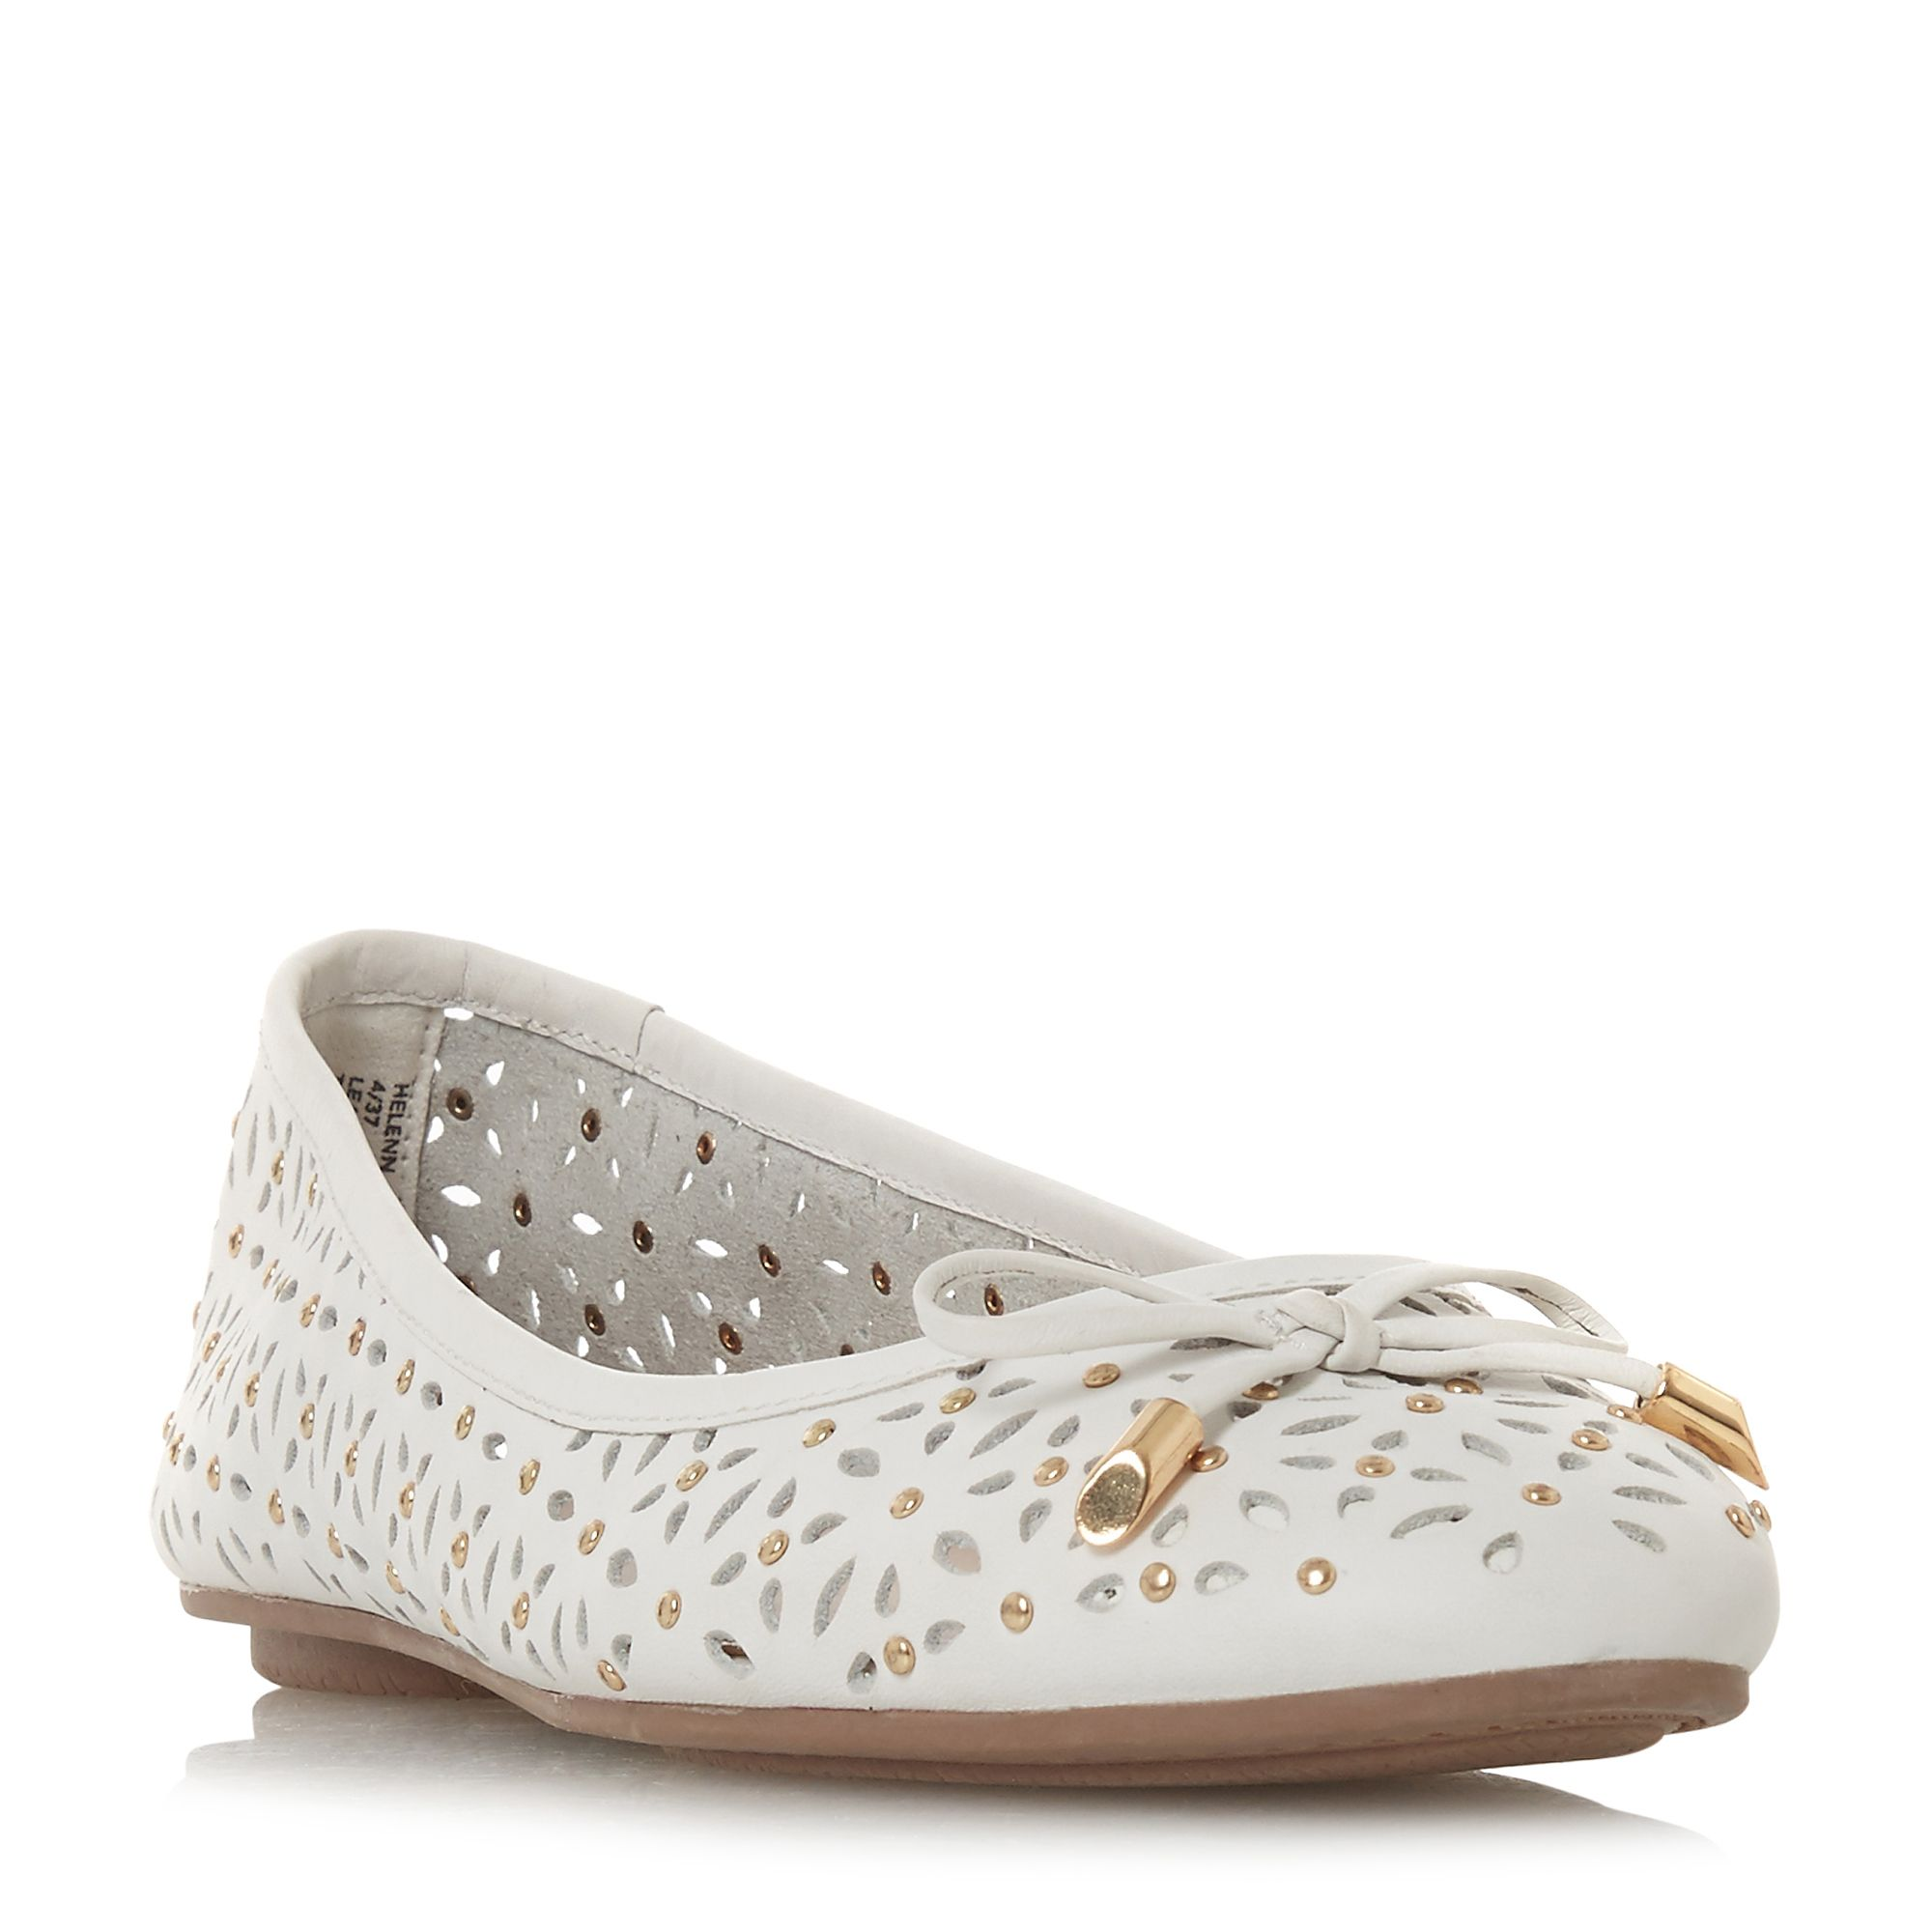 Dune Helenn Floral Laser Cut Ballet Pump Shoes, White